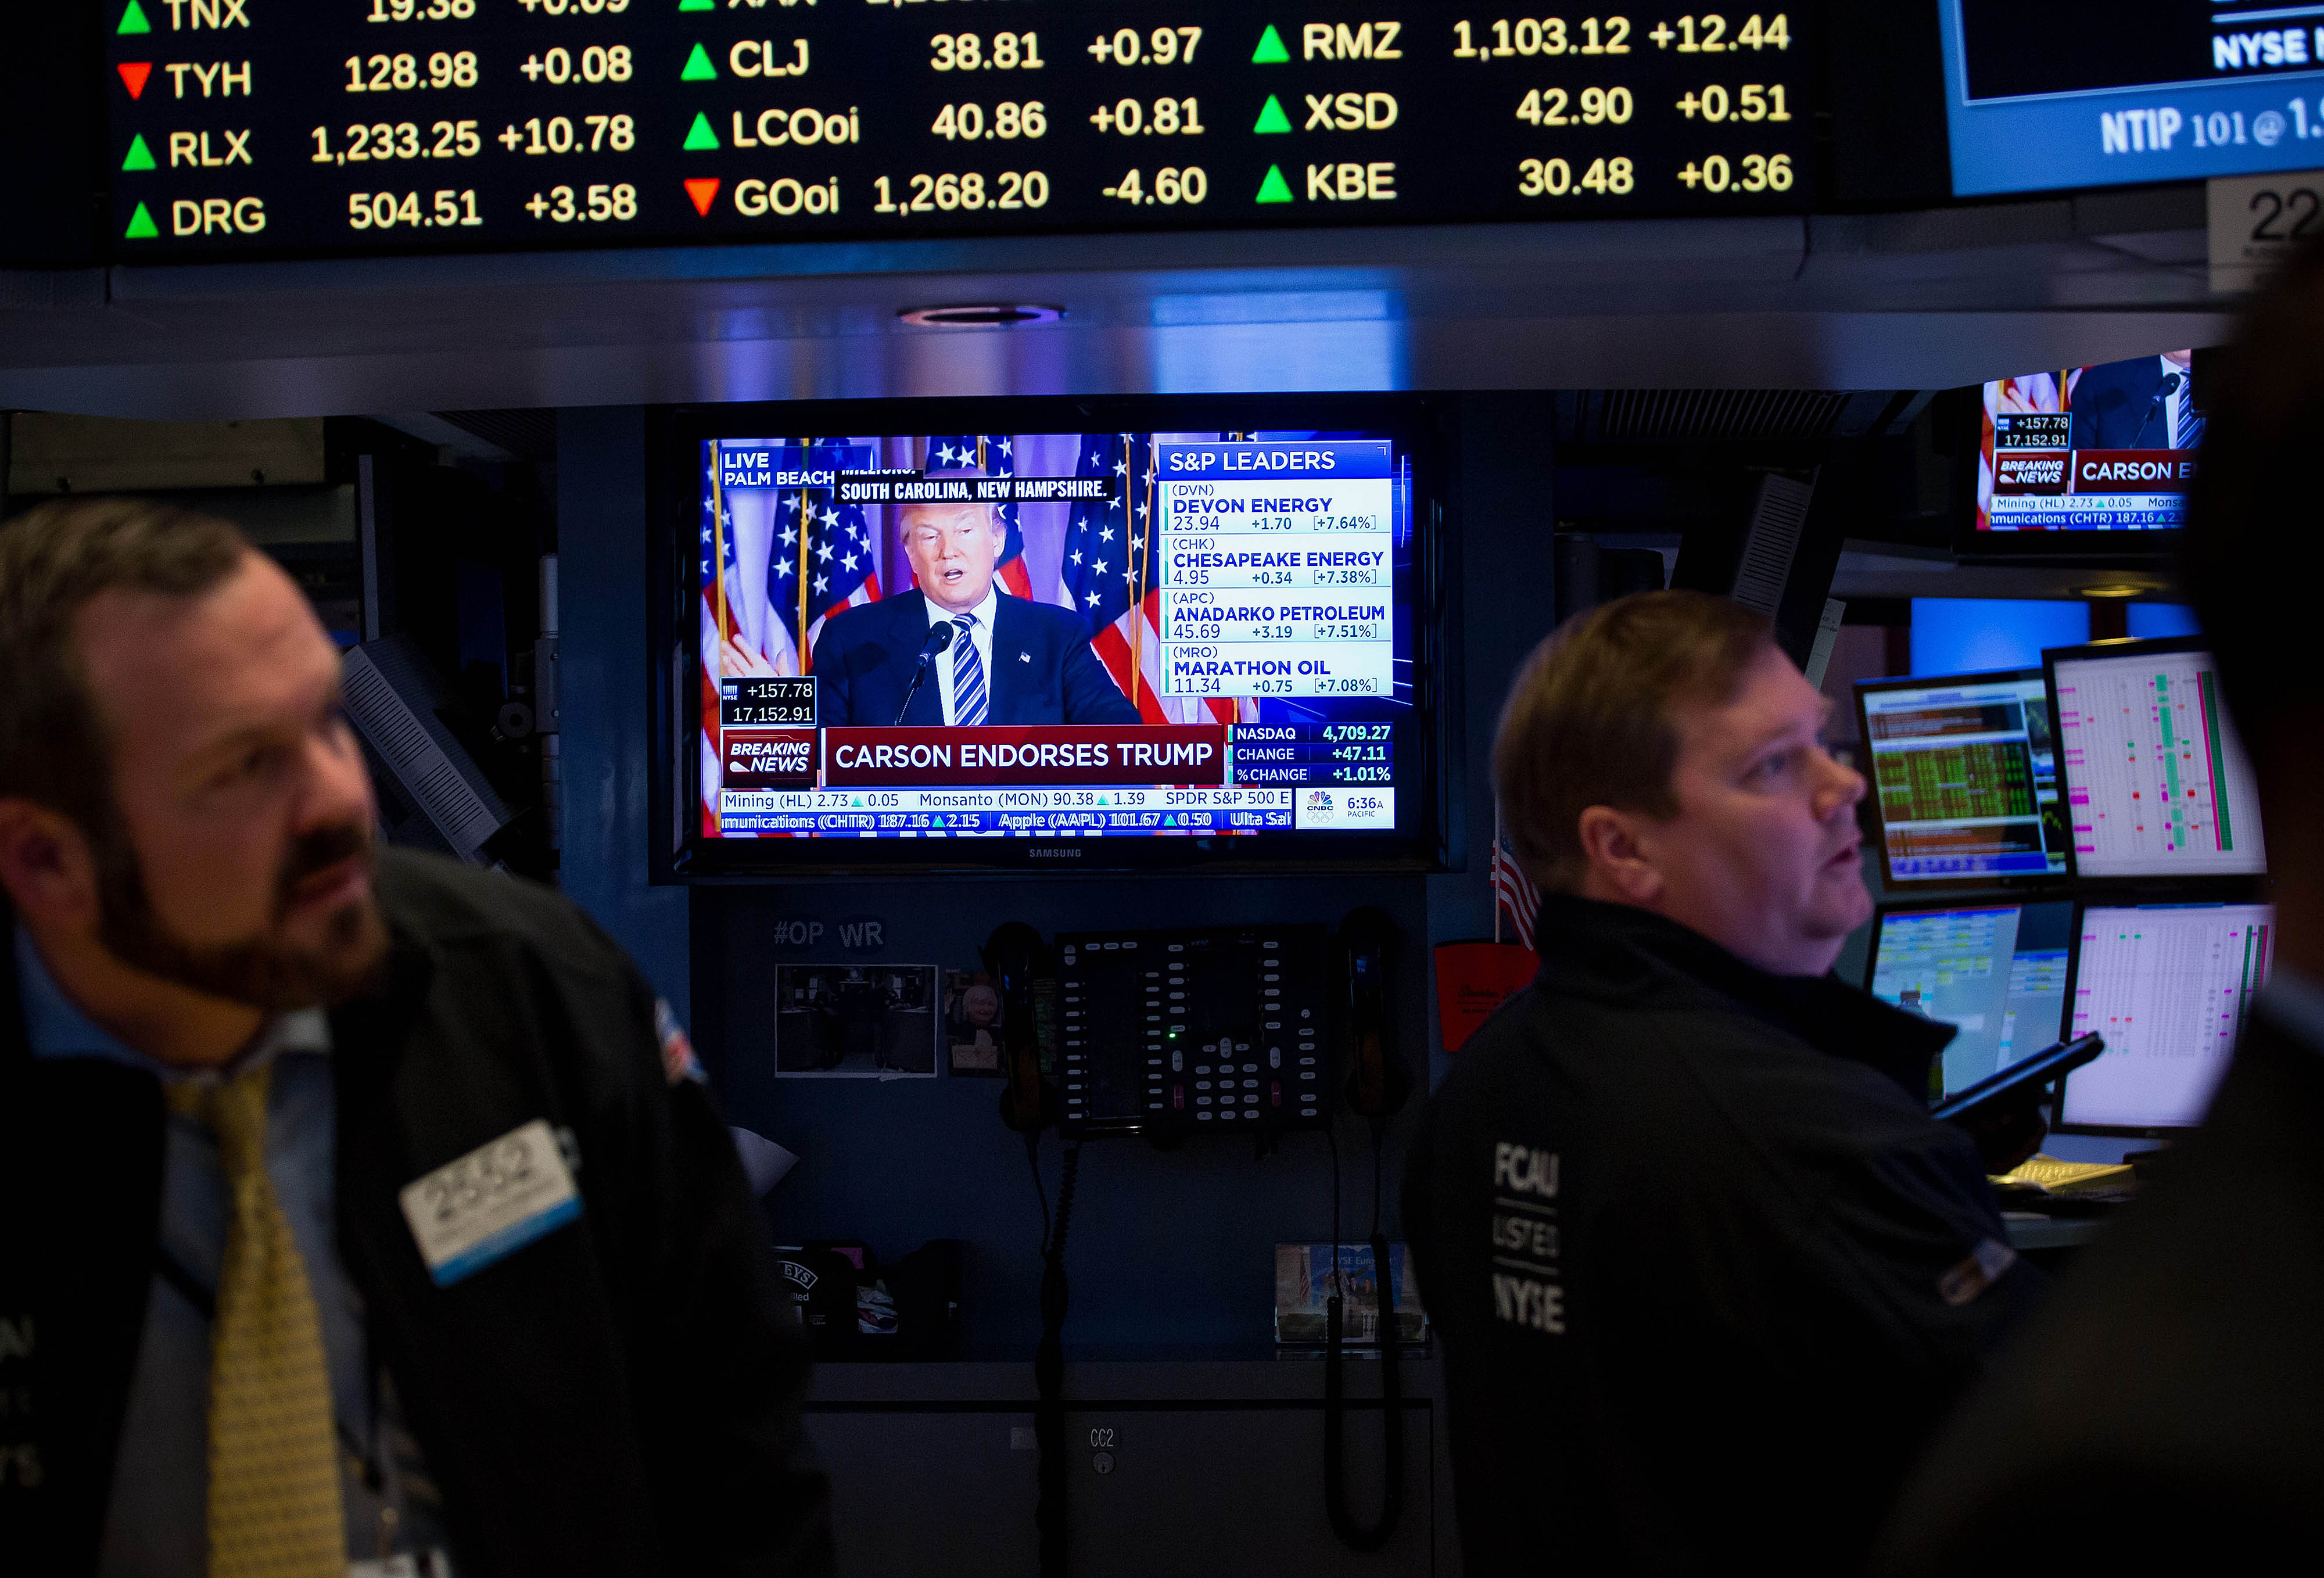 Trading On The Floor Of The NYSE As U.S. Stocks Join Global Rally While Investors Embrace ECB Measures